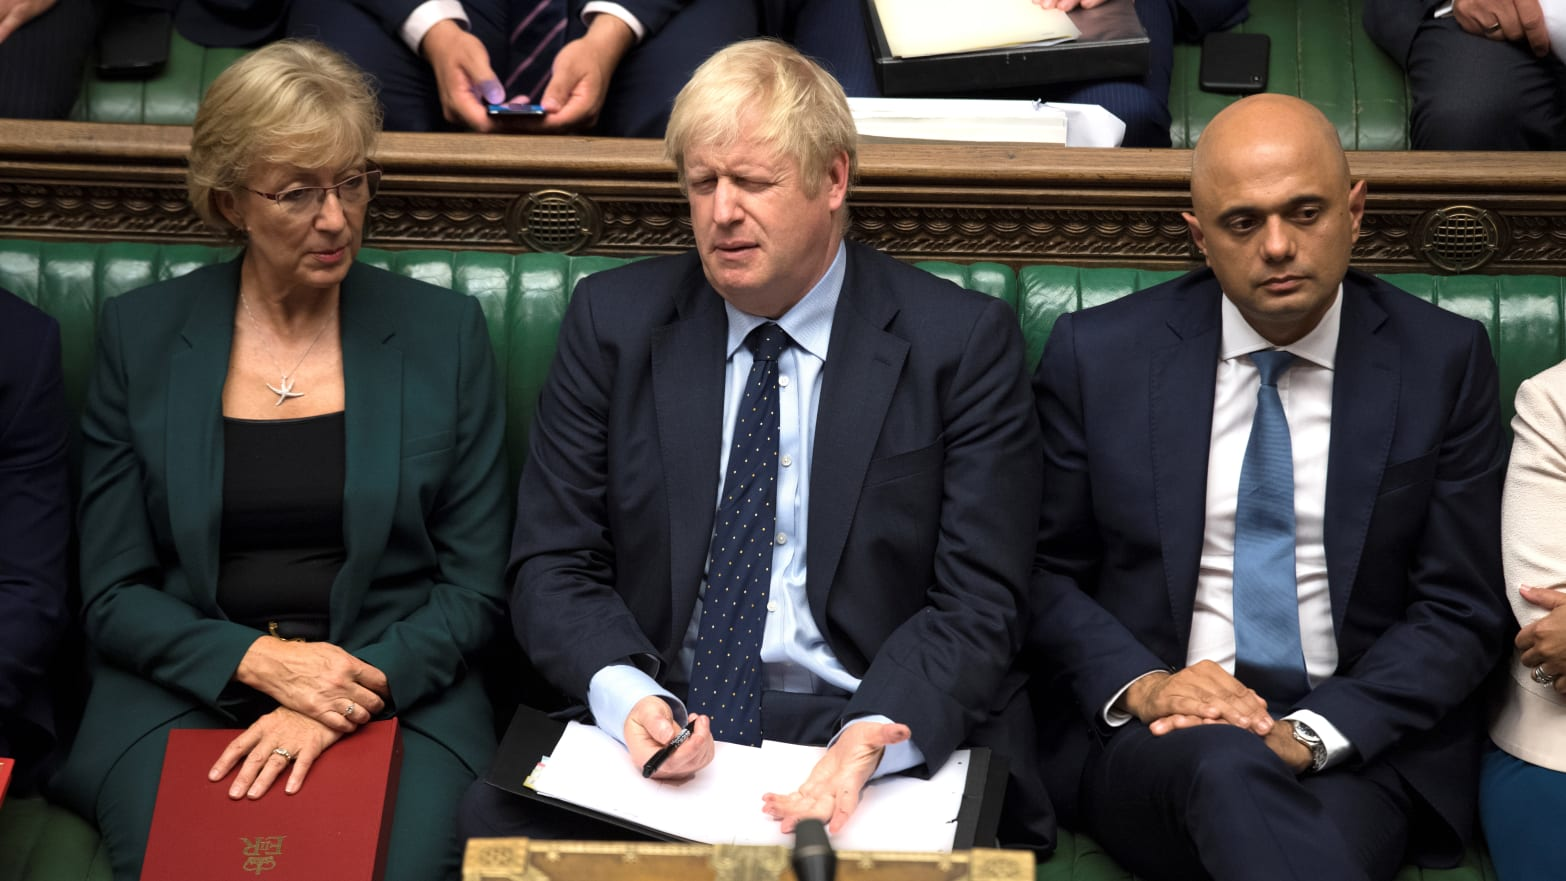 Boris Johnson Humiliated by Parliament in First Brexit Vote